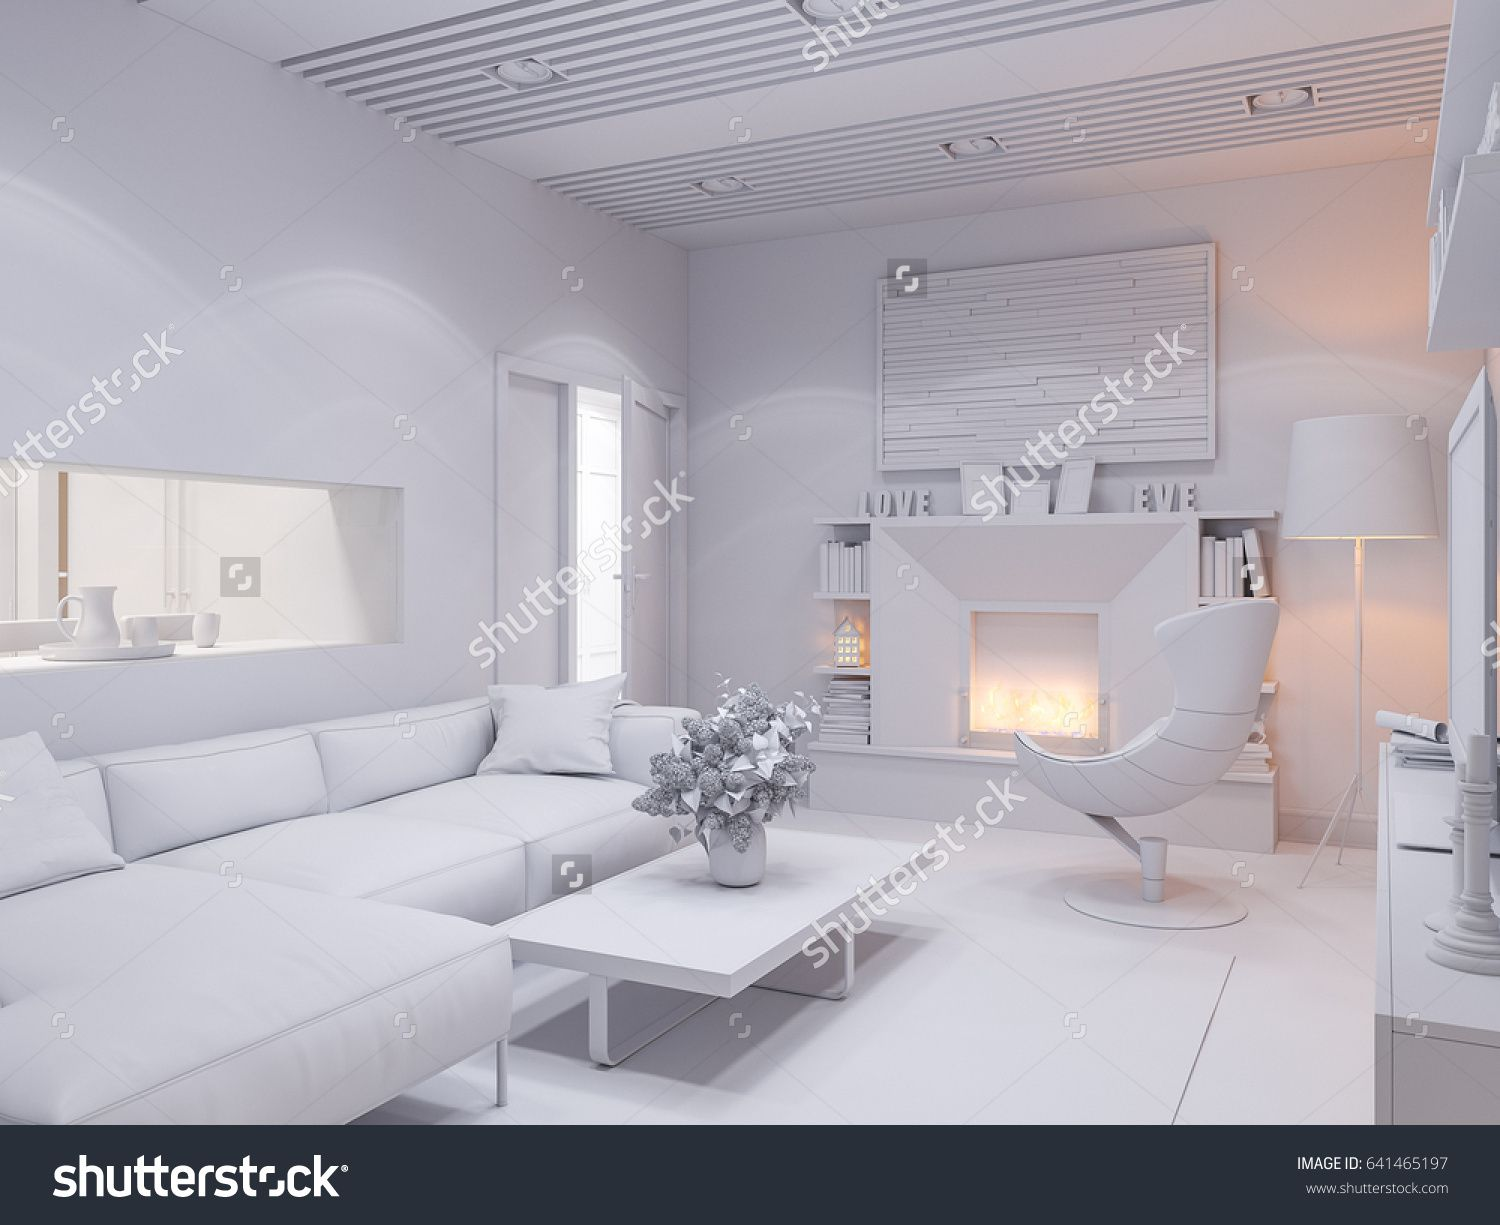 illustration of the interior design living room style apartment is modern render without textures and materials also rh au pinterest